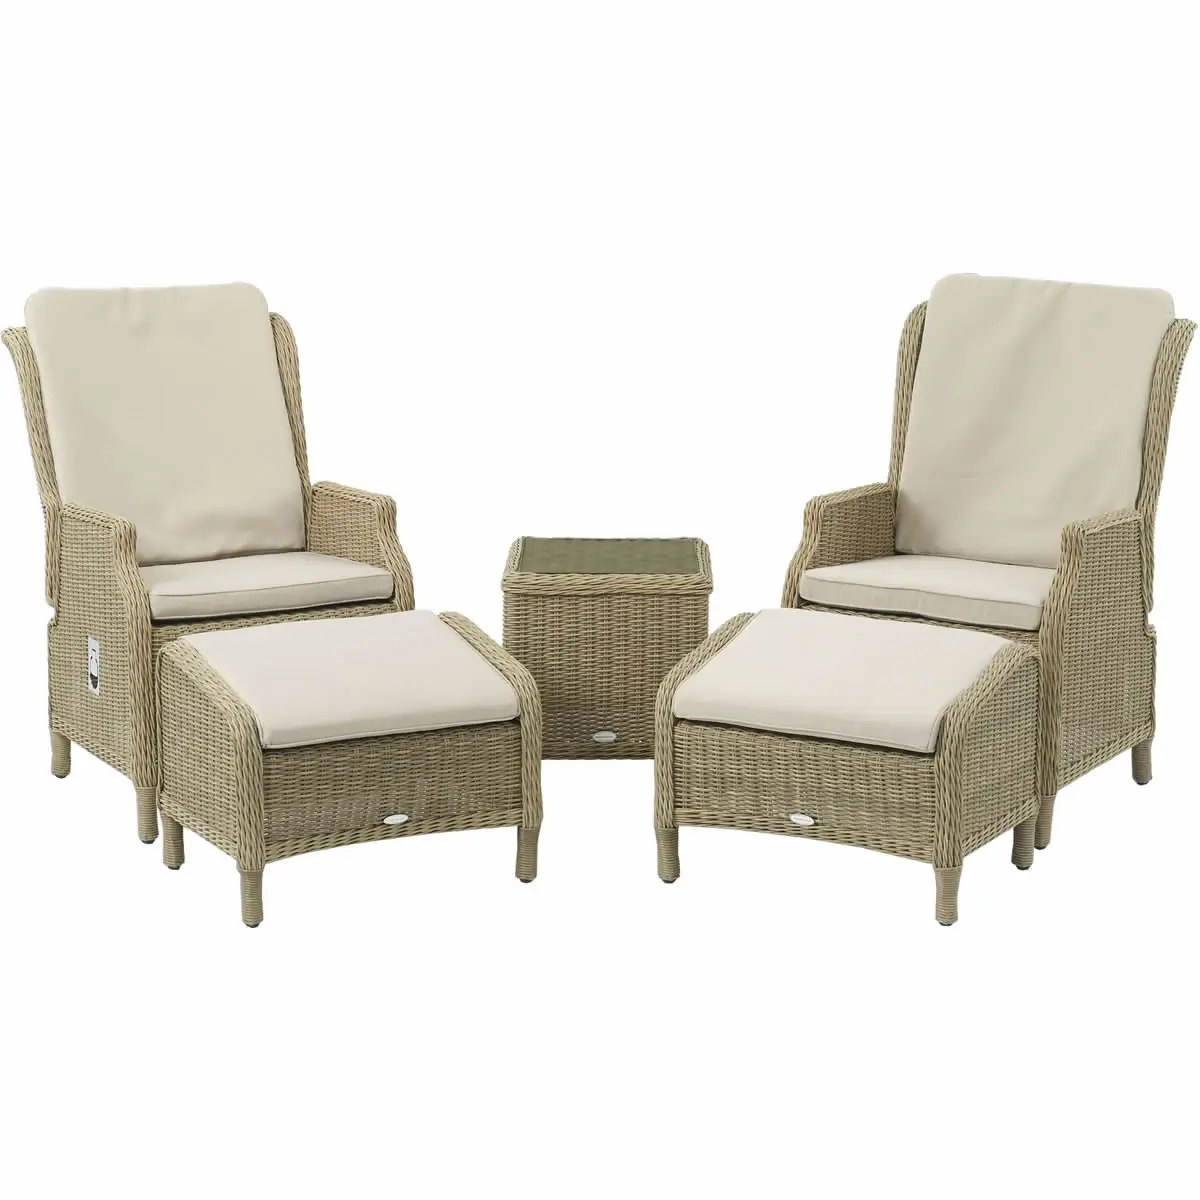 outdoor recliner chairs uk rocking at target bramblecrest oakridge 2 recliners set season proof